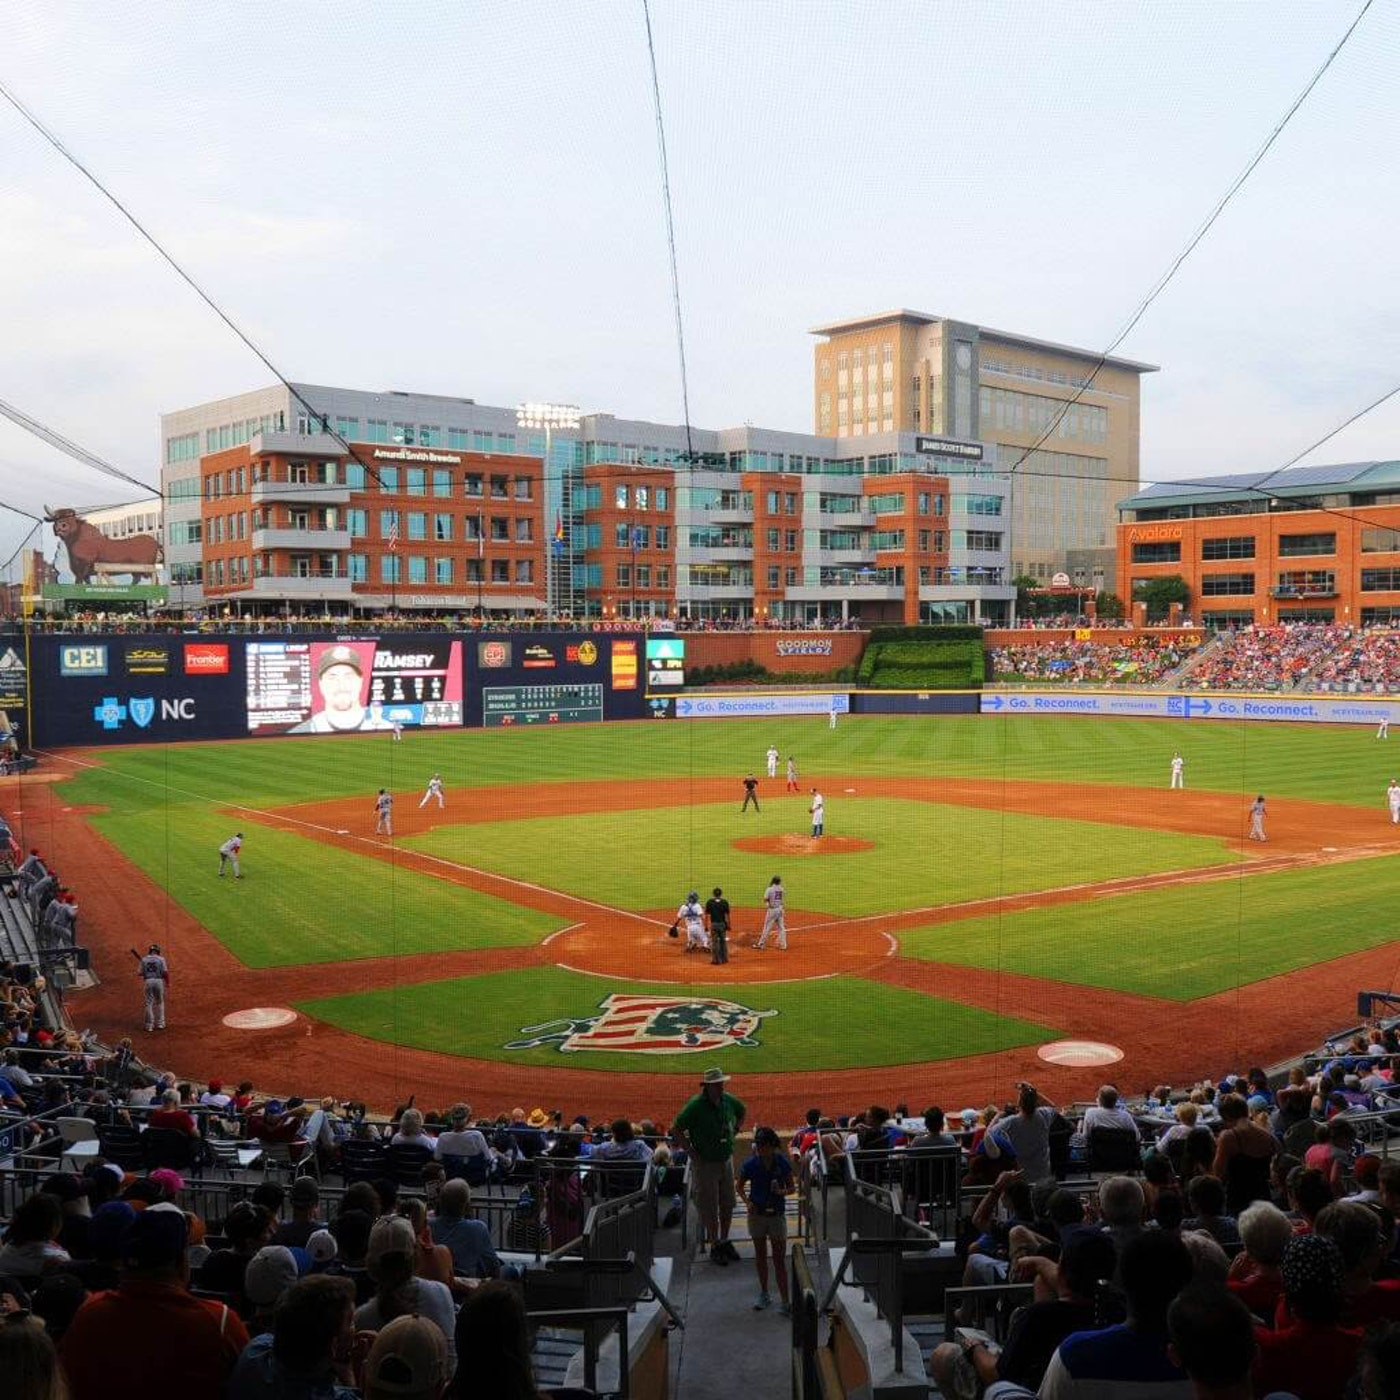 The Durham Bulls Athletic Park, one of the finest ballparks you'll find anywhere. (Photo: Durham Bulls)